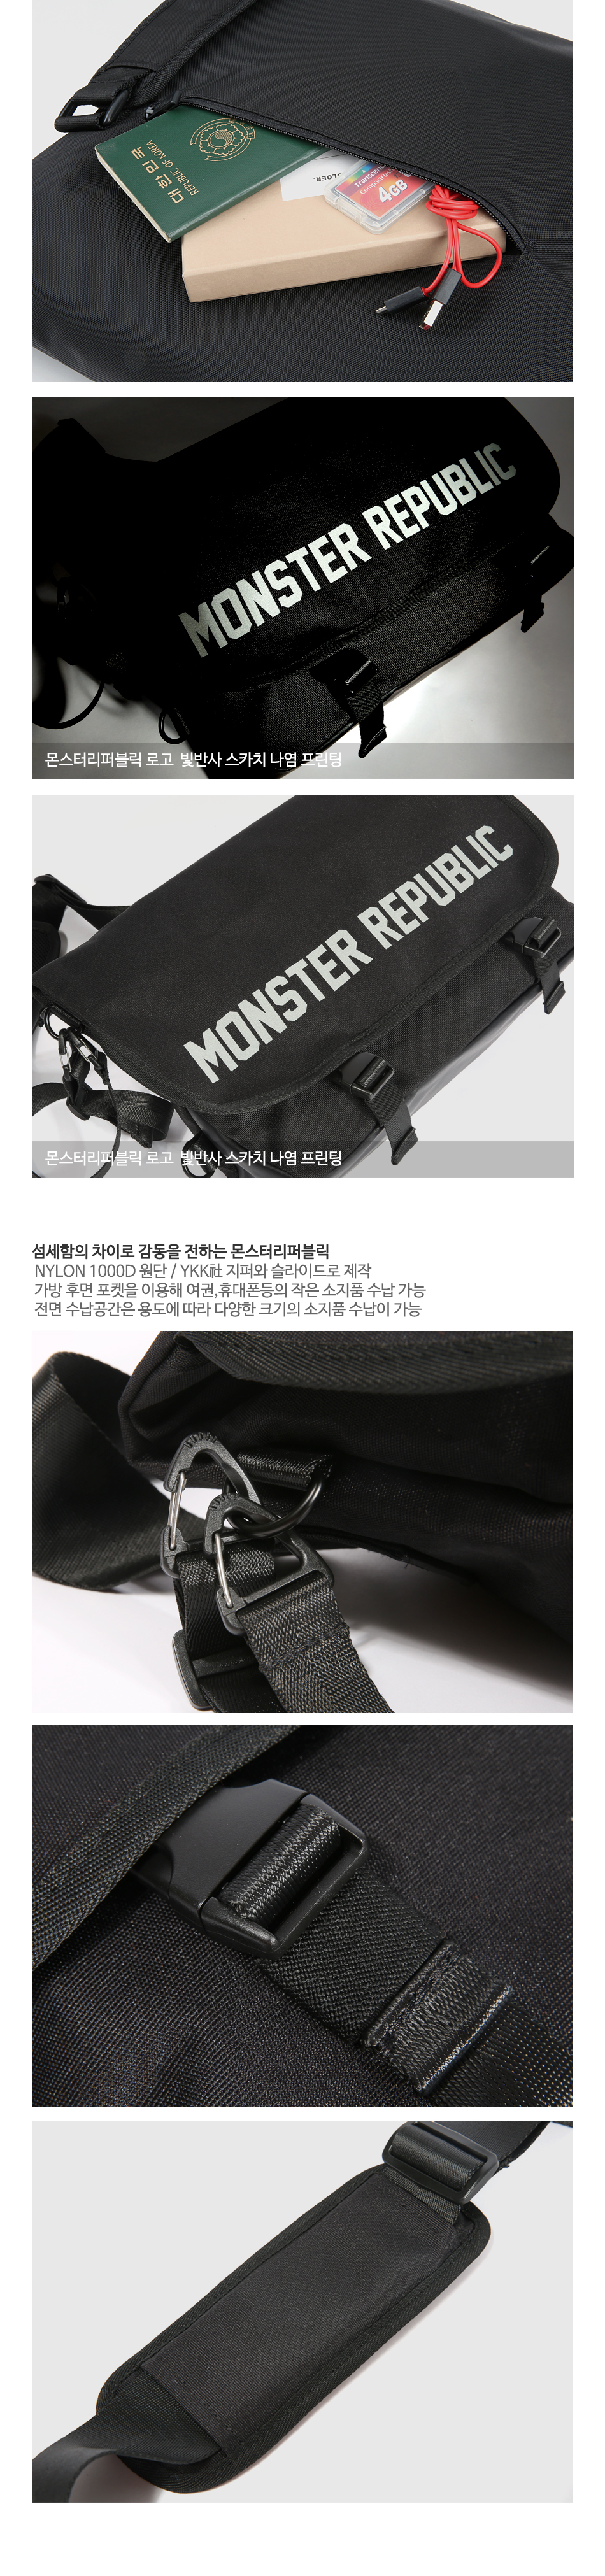 [사은품 증정] MONSTER SCOTCH MESSENGER BAG / BLACK